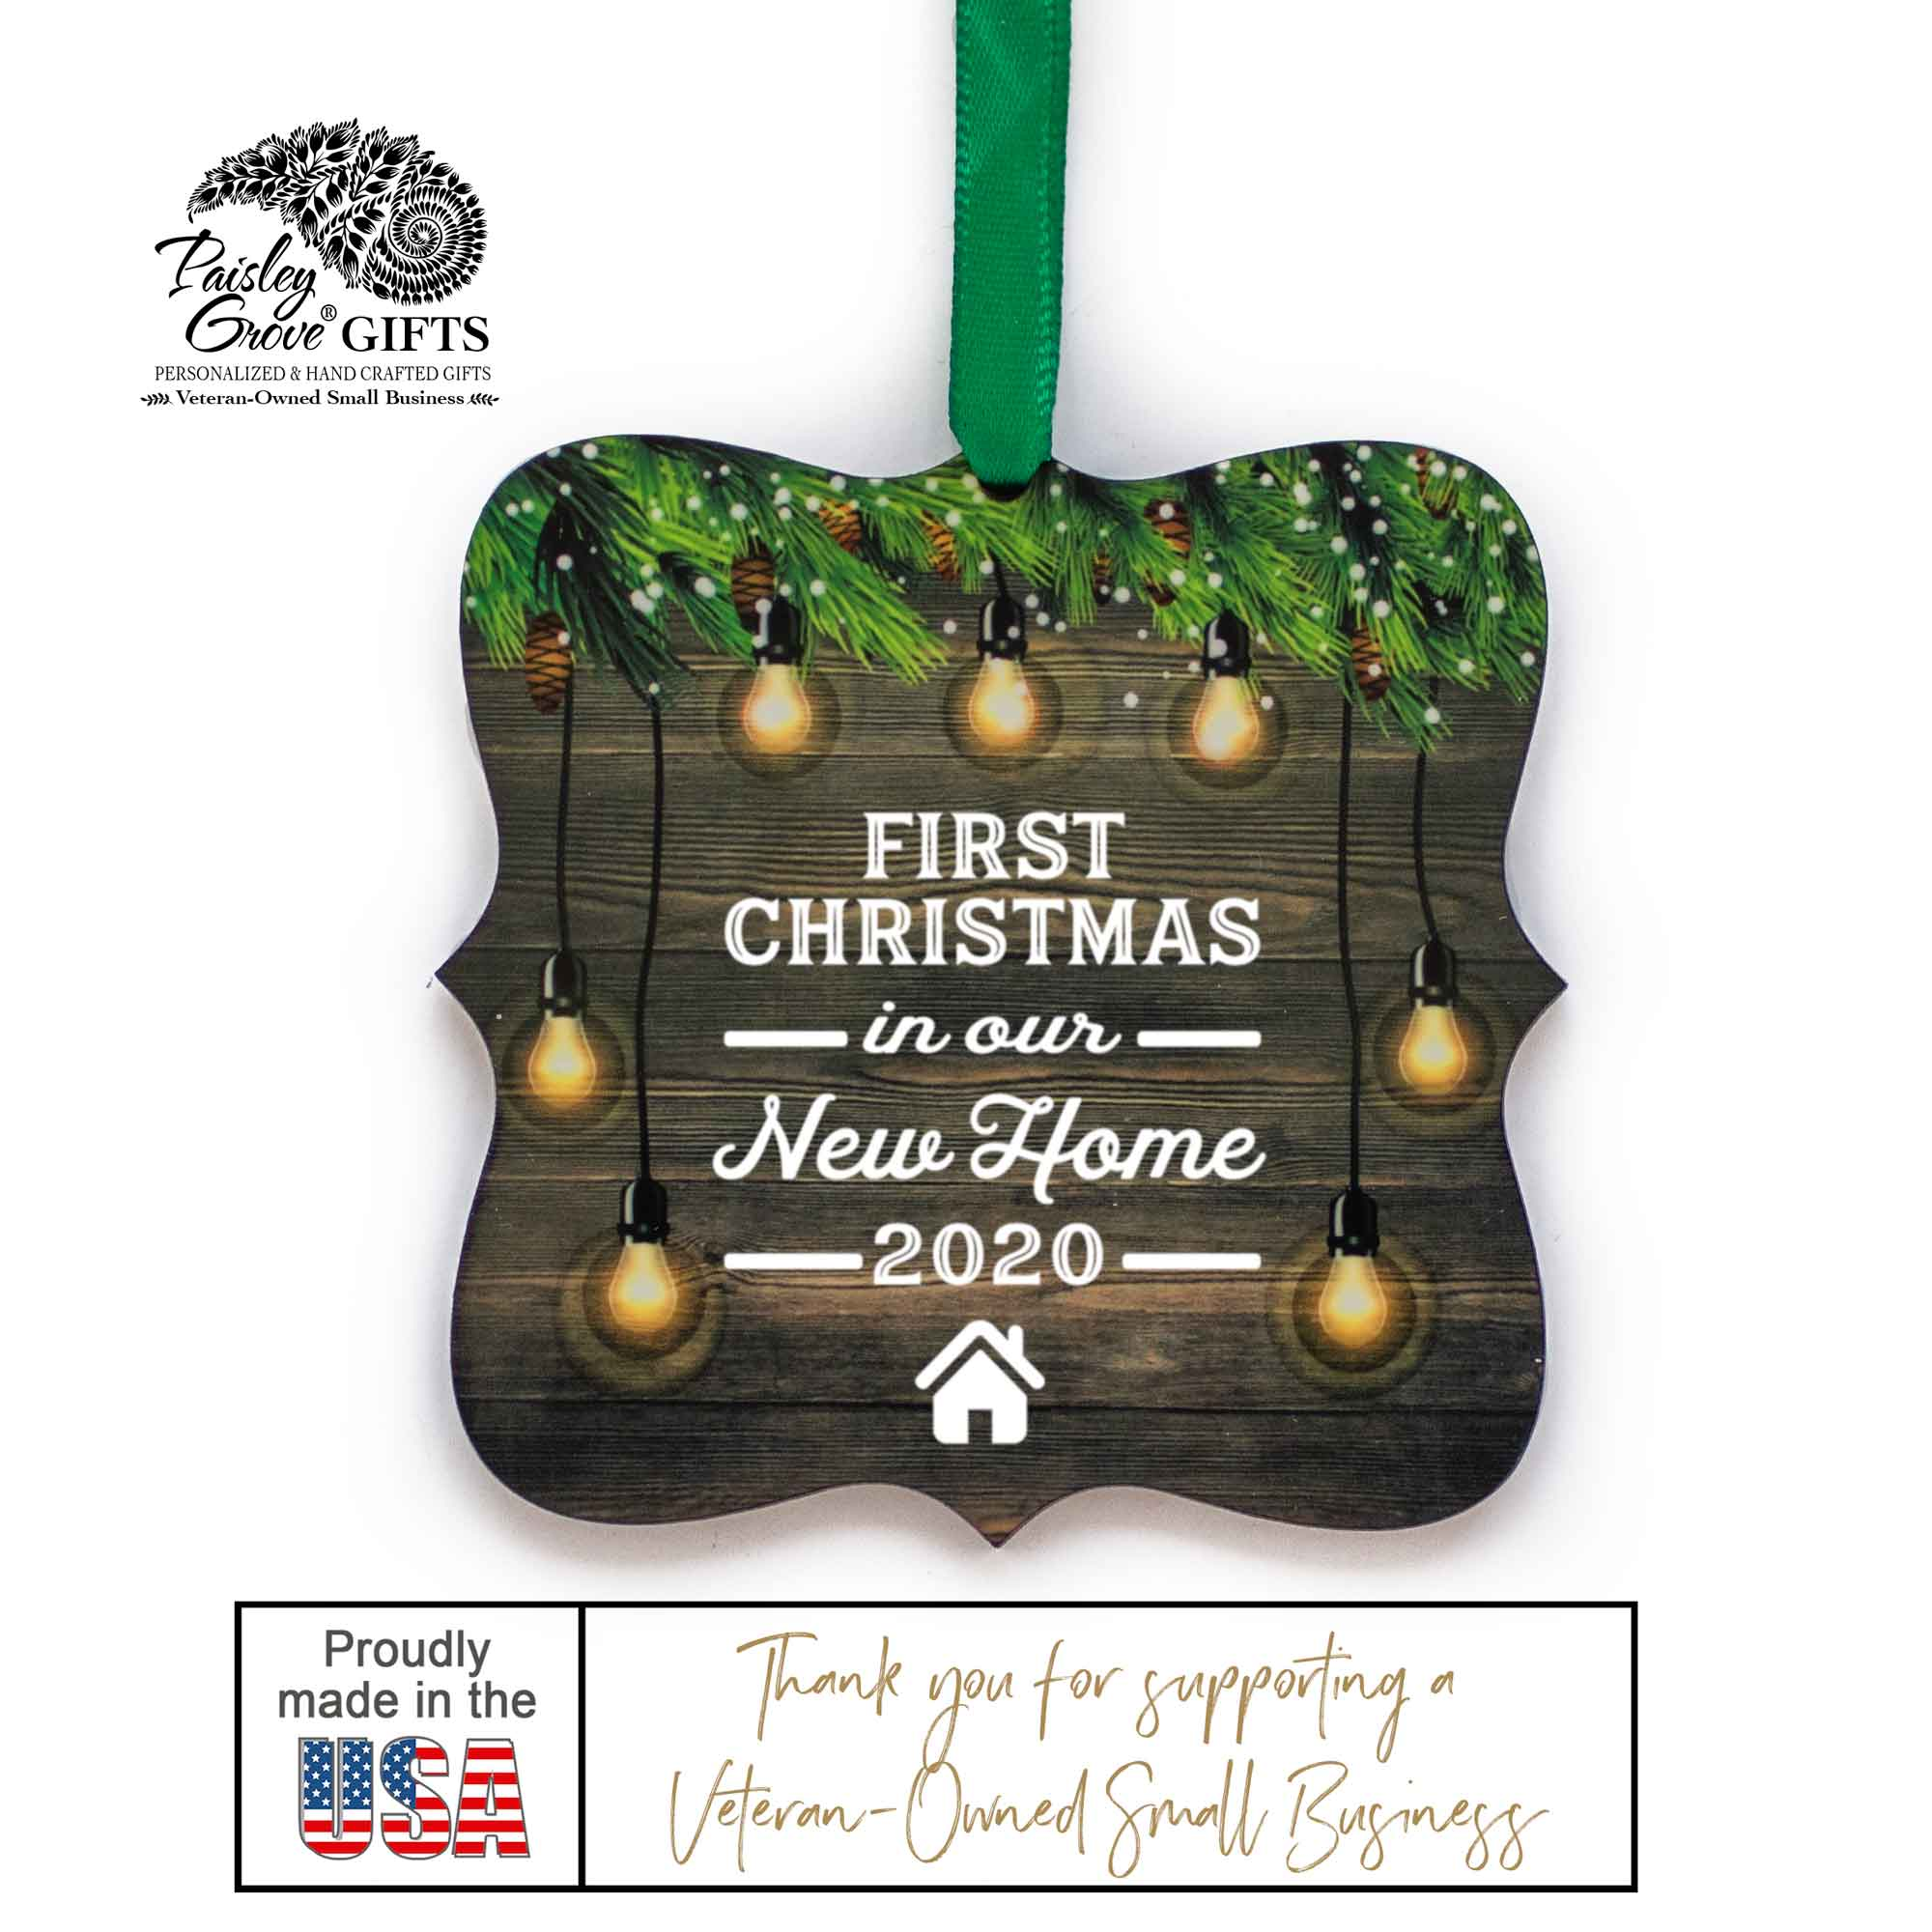 CopyrightPaisleyGroveGIFTS S510m New Homeowner Christmas Ornament Gift Made in the USA